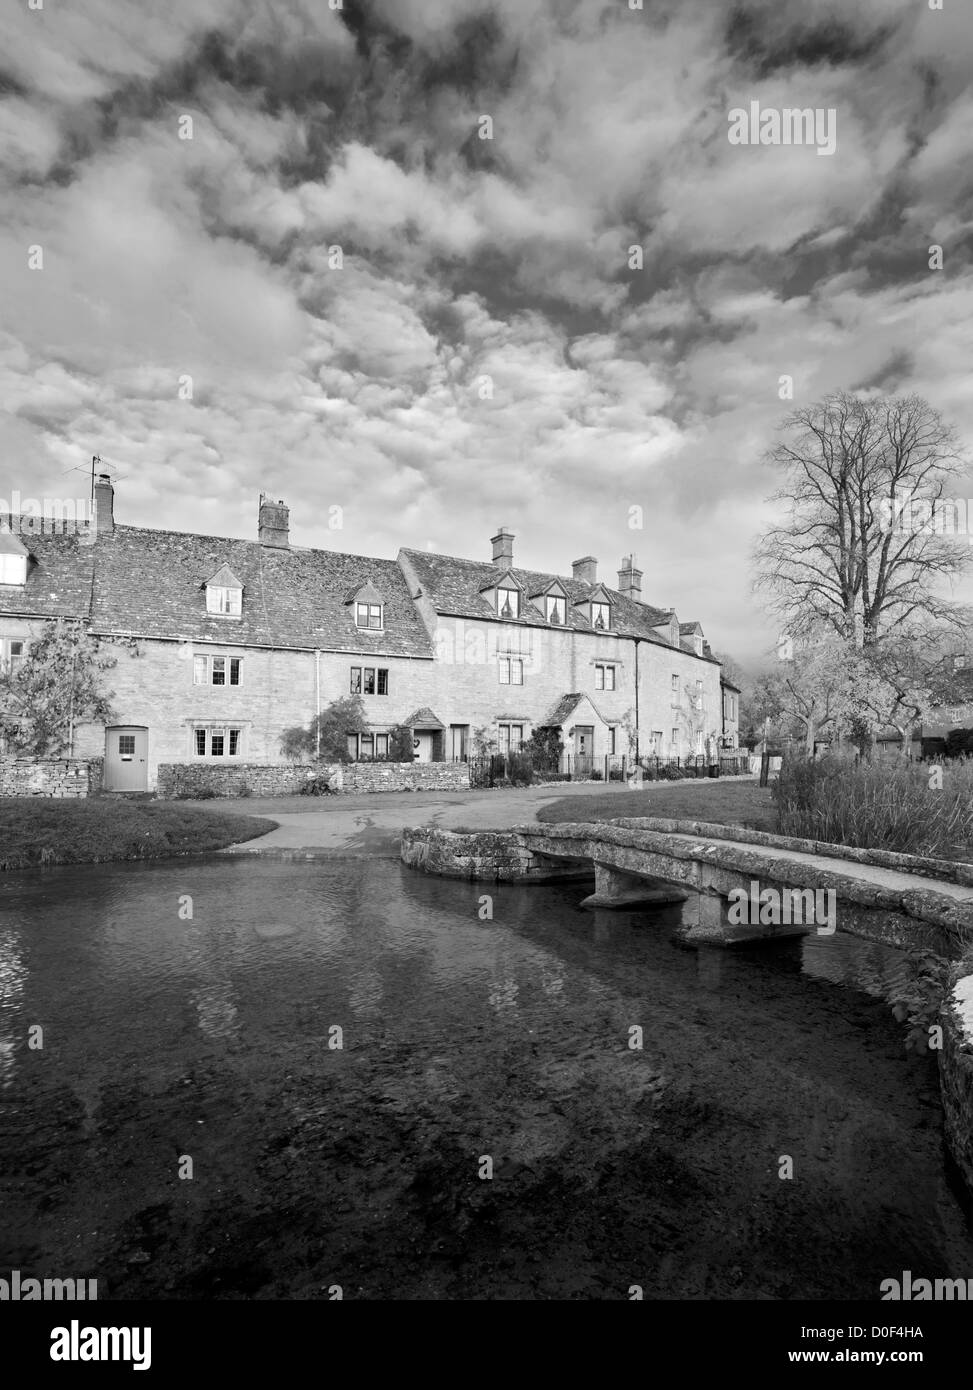 The Cotswold village of Lower Slaughter and the River Eye in black and white, Gloucestershire, England, UK - Stock Image